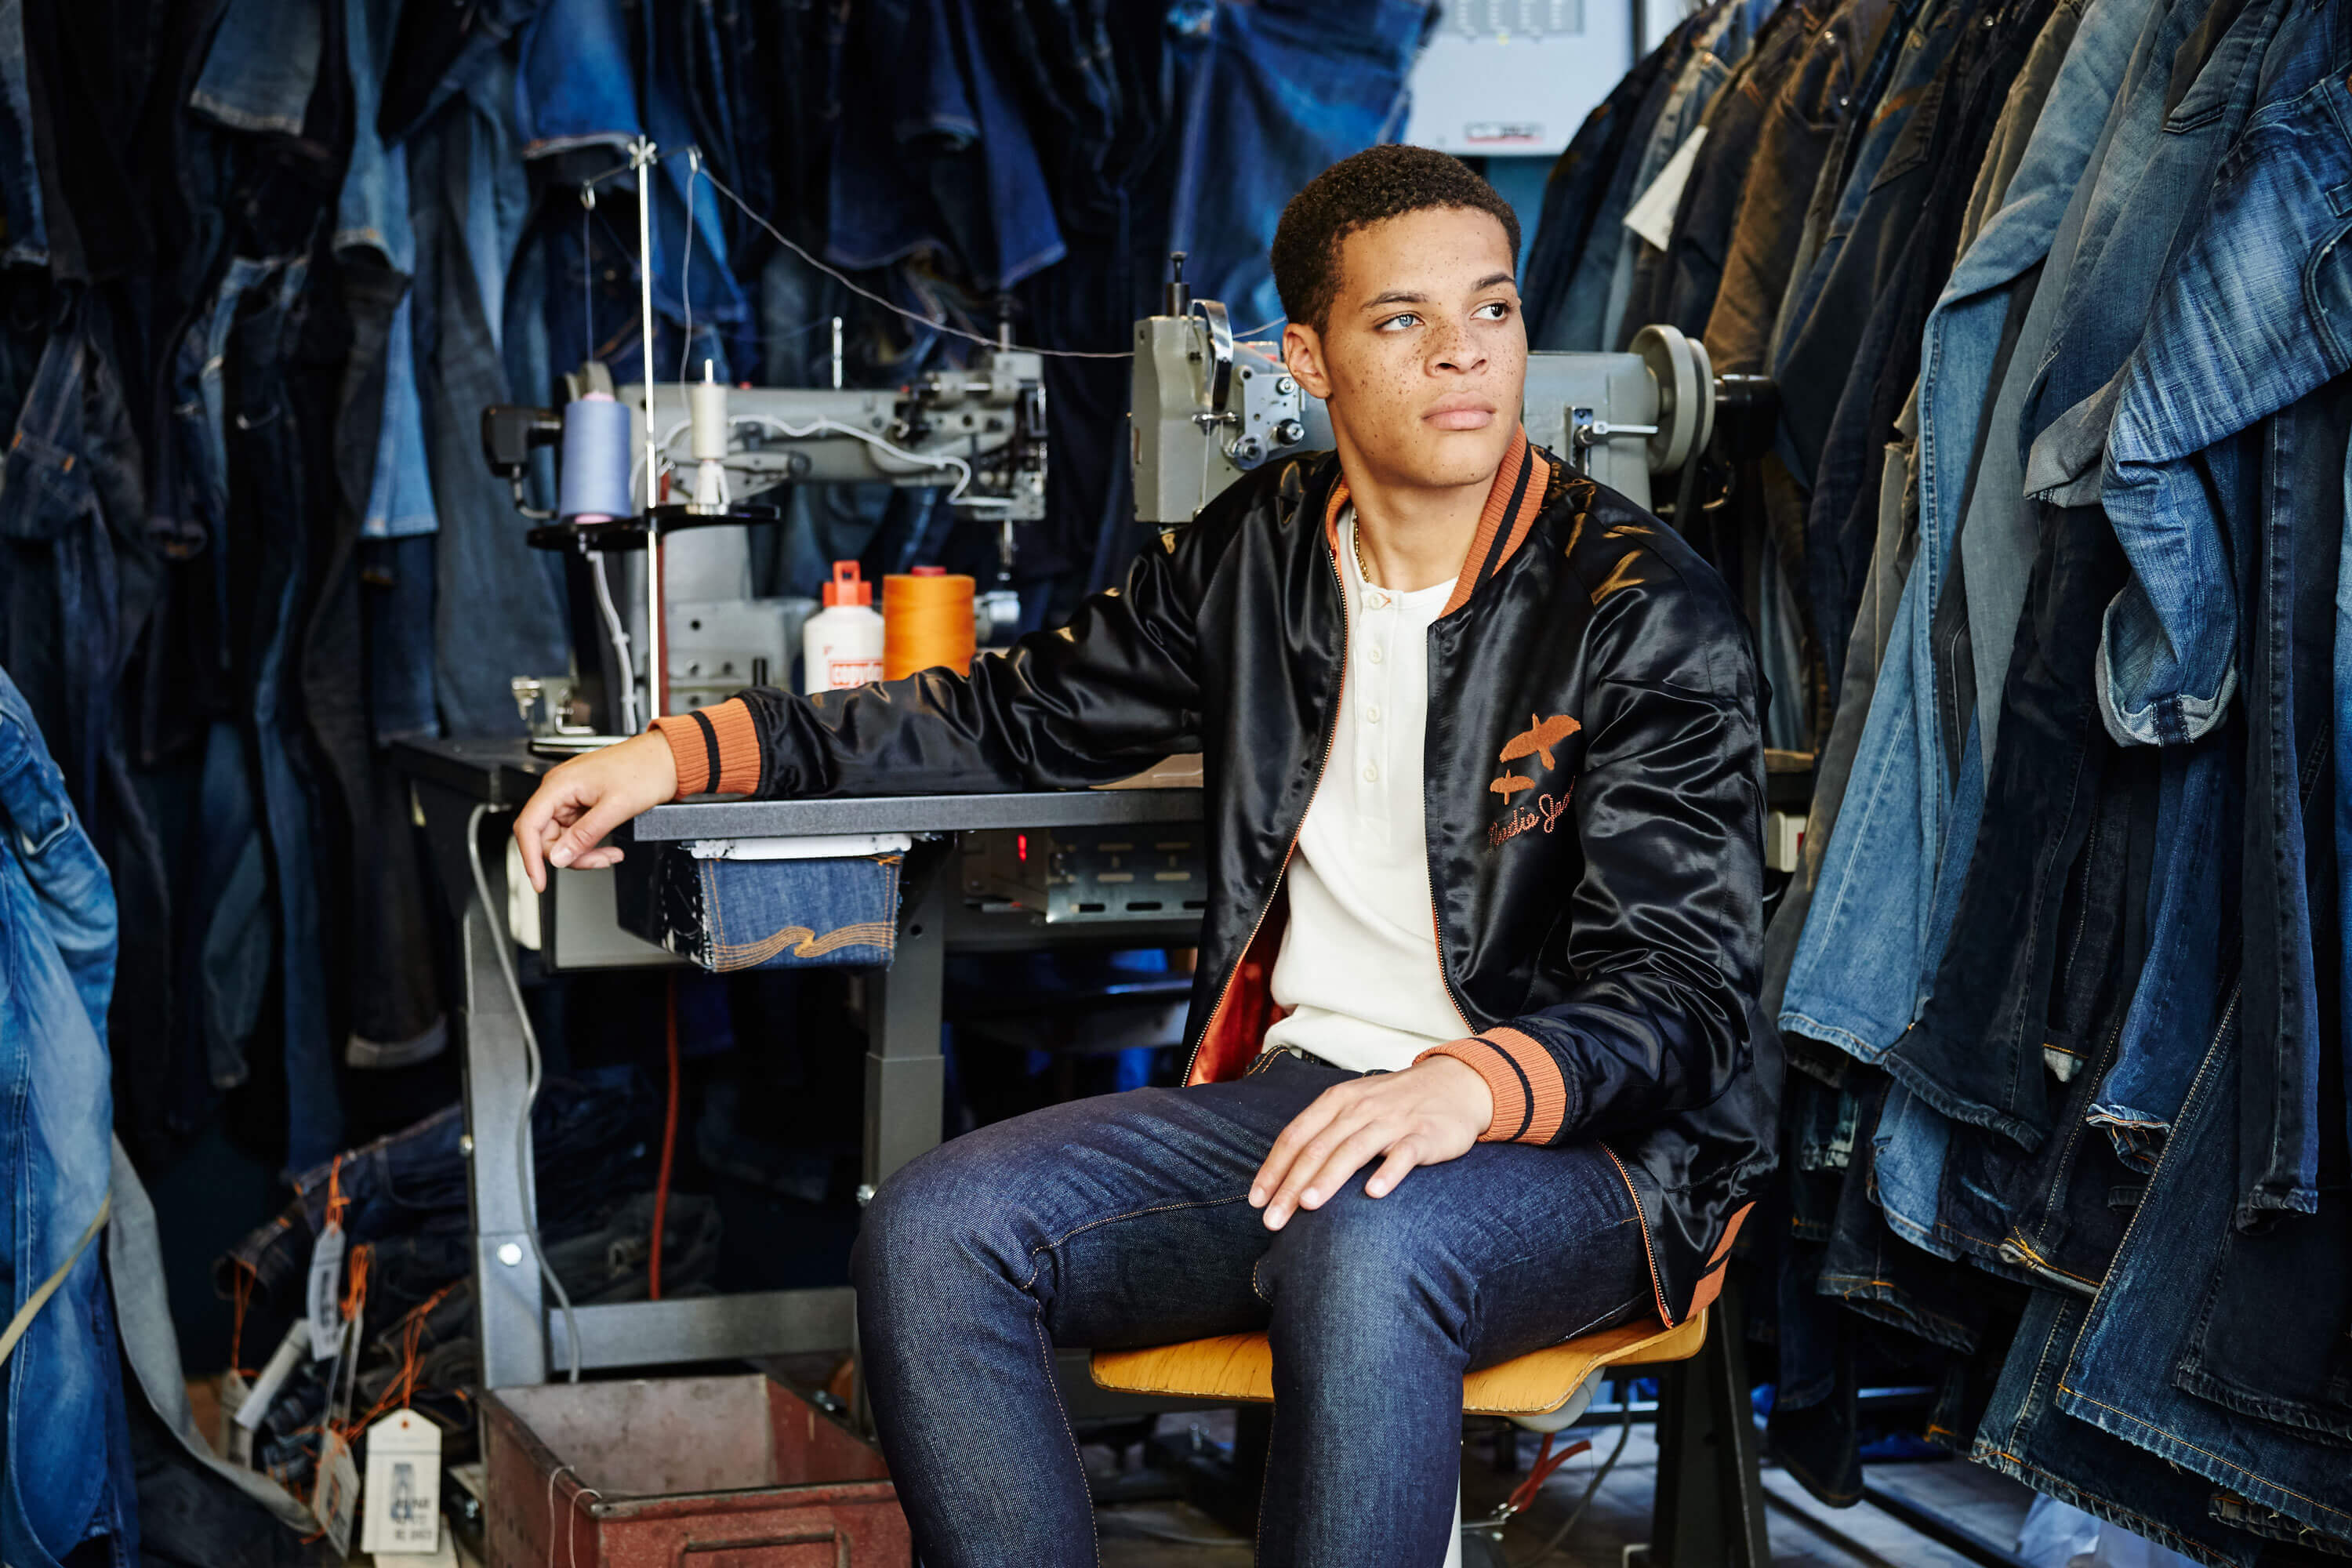 Tack-Studio-Creative-Agency-Berwick-Street-Campaign-denim-workshop-photoshoot